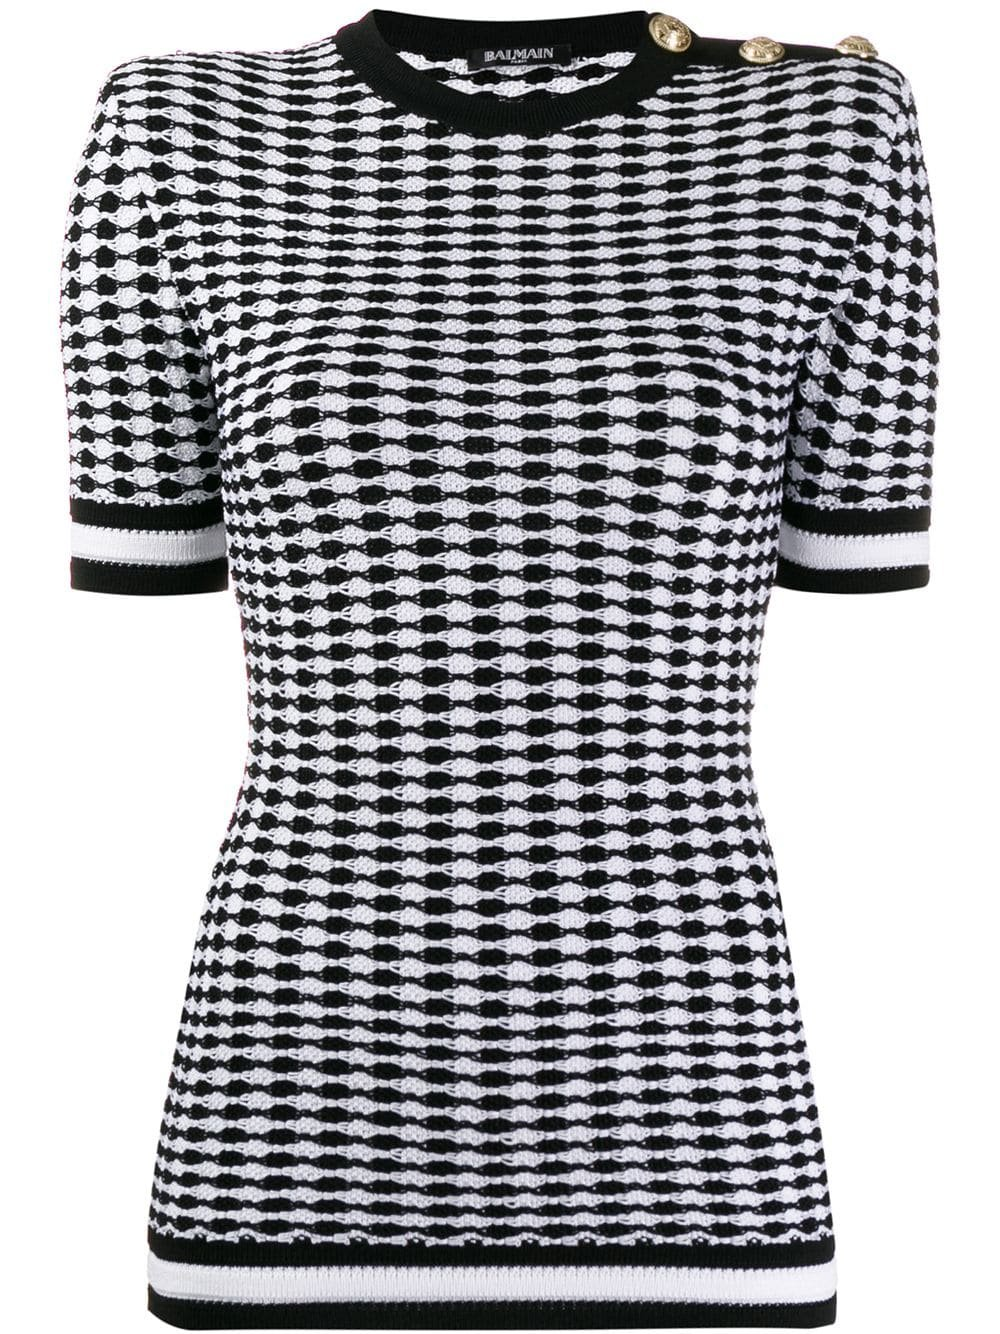 Balmain short sleeved knitted top $1,752 - Shop AW19 Online - Fast Delivery, Price